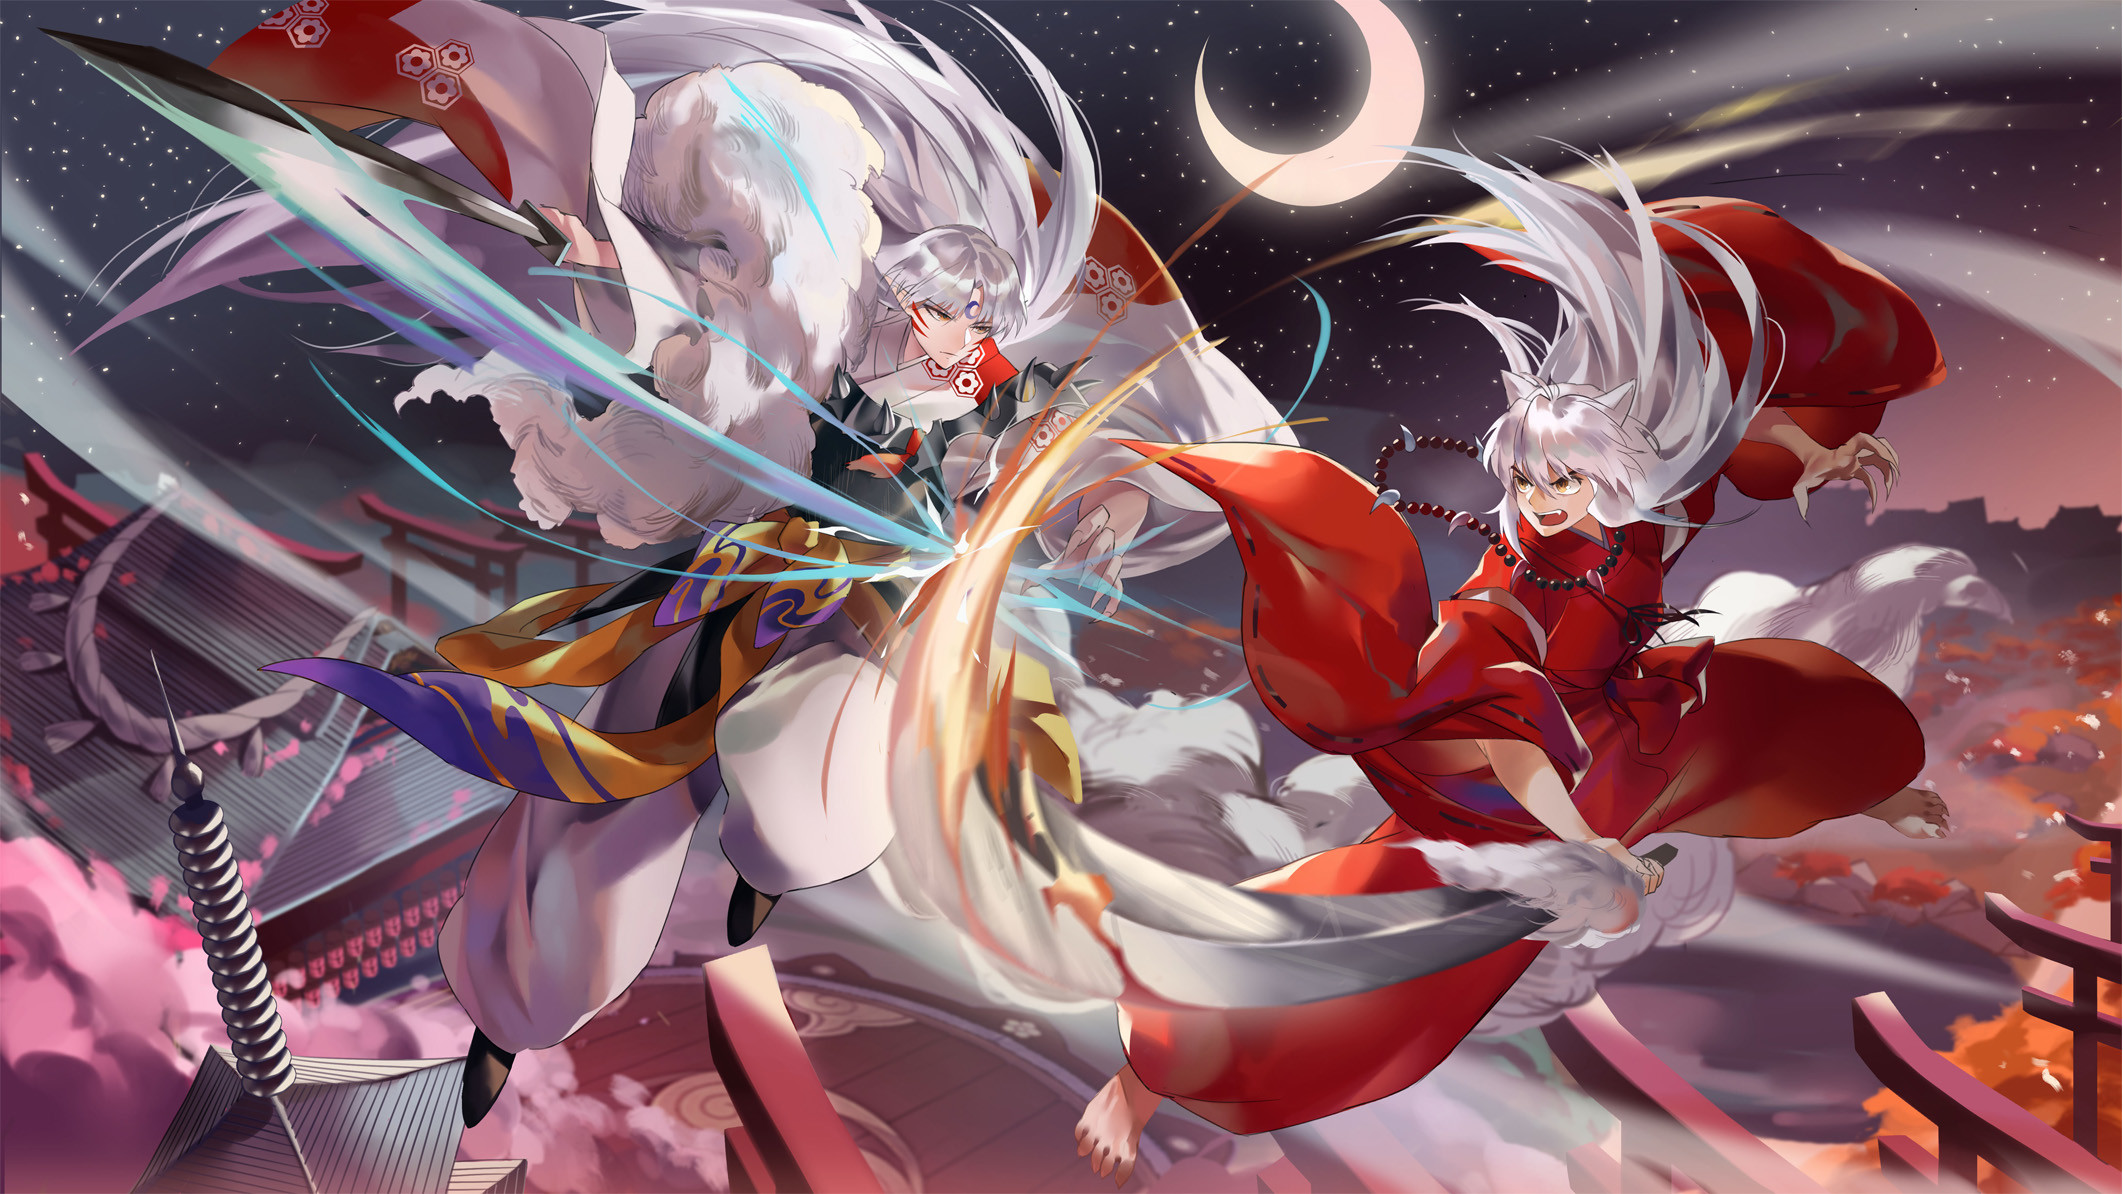 2123x1194 InuYasha HD Wallpaper | Hintergrund |  | ID:934091 - Wallpaper  Abyss